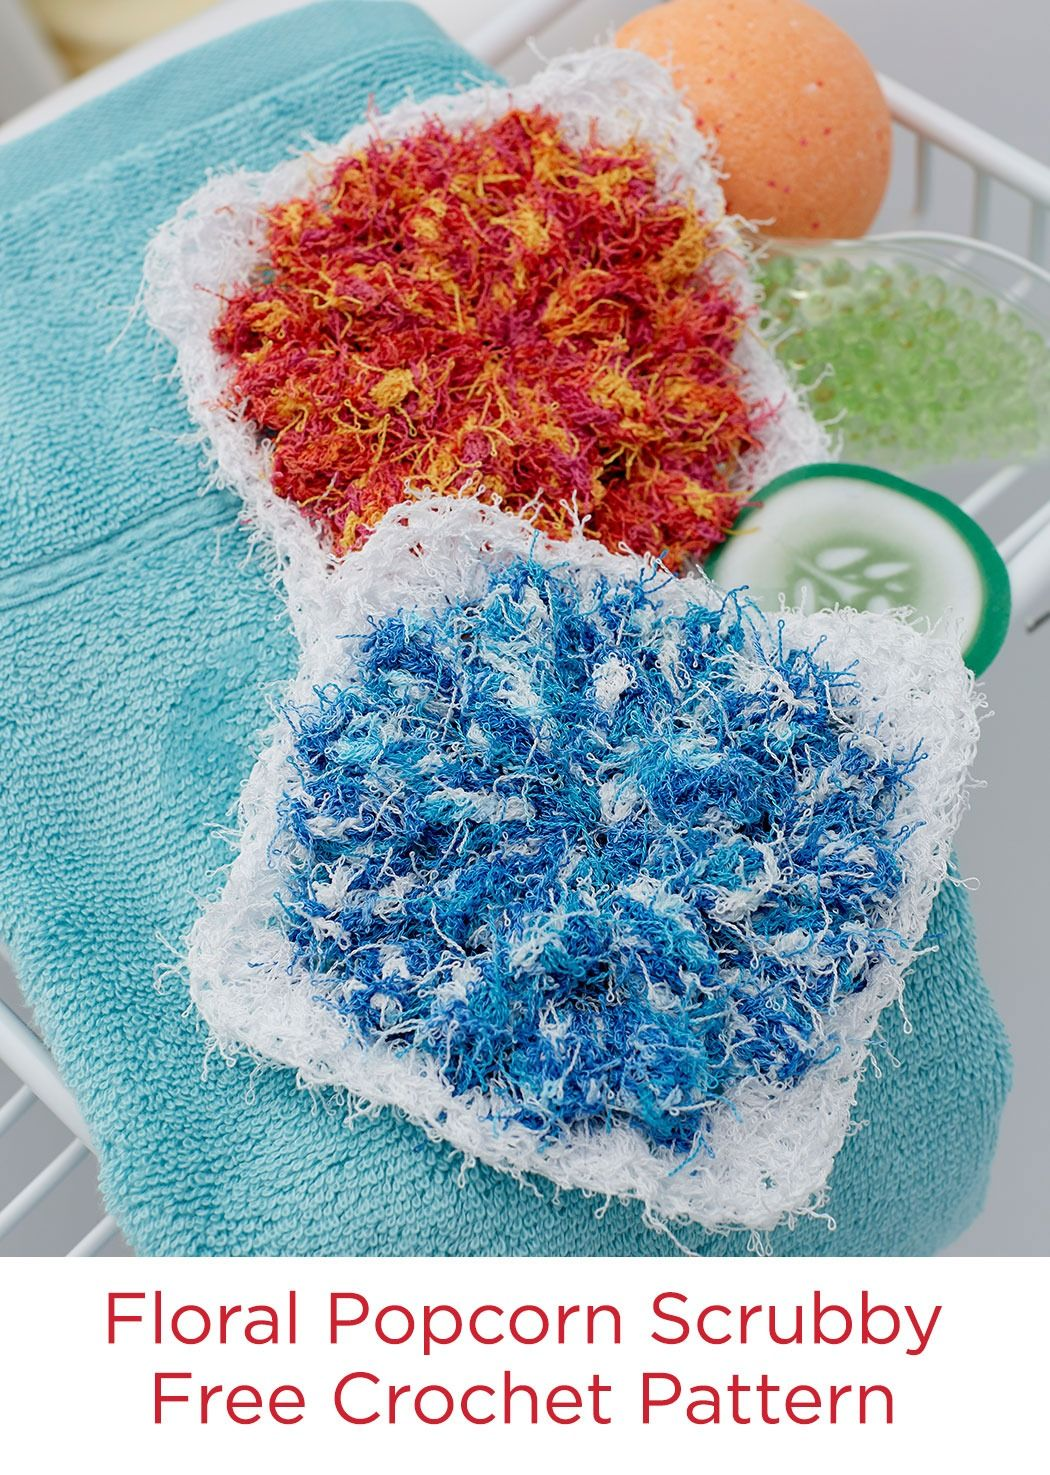 Floral Popcorn Scrubby Free Crochet Pattern In Red Heart Scrubby